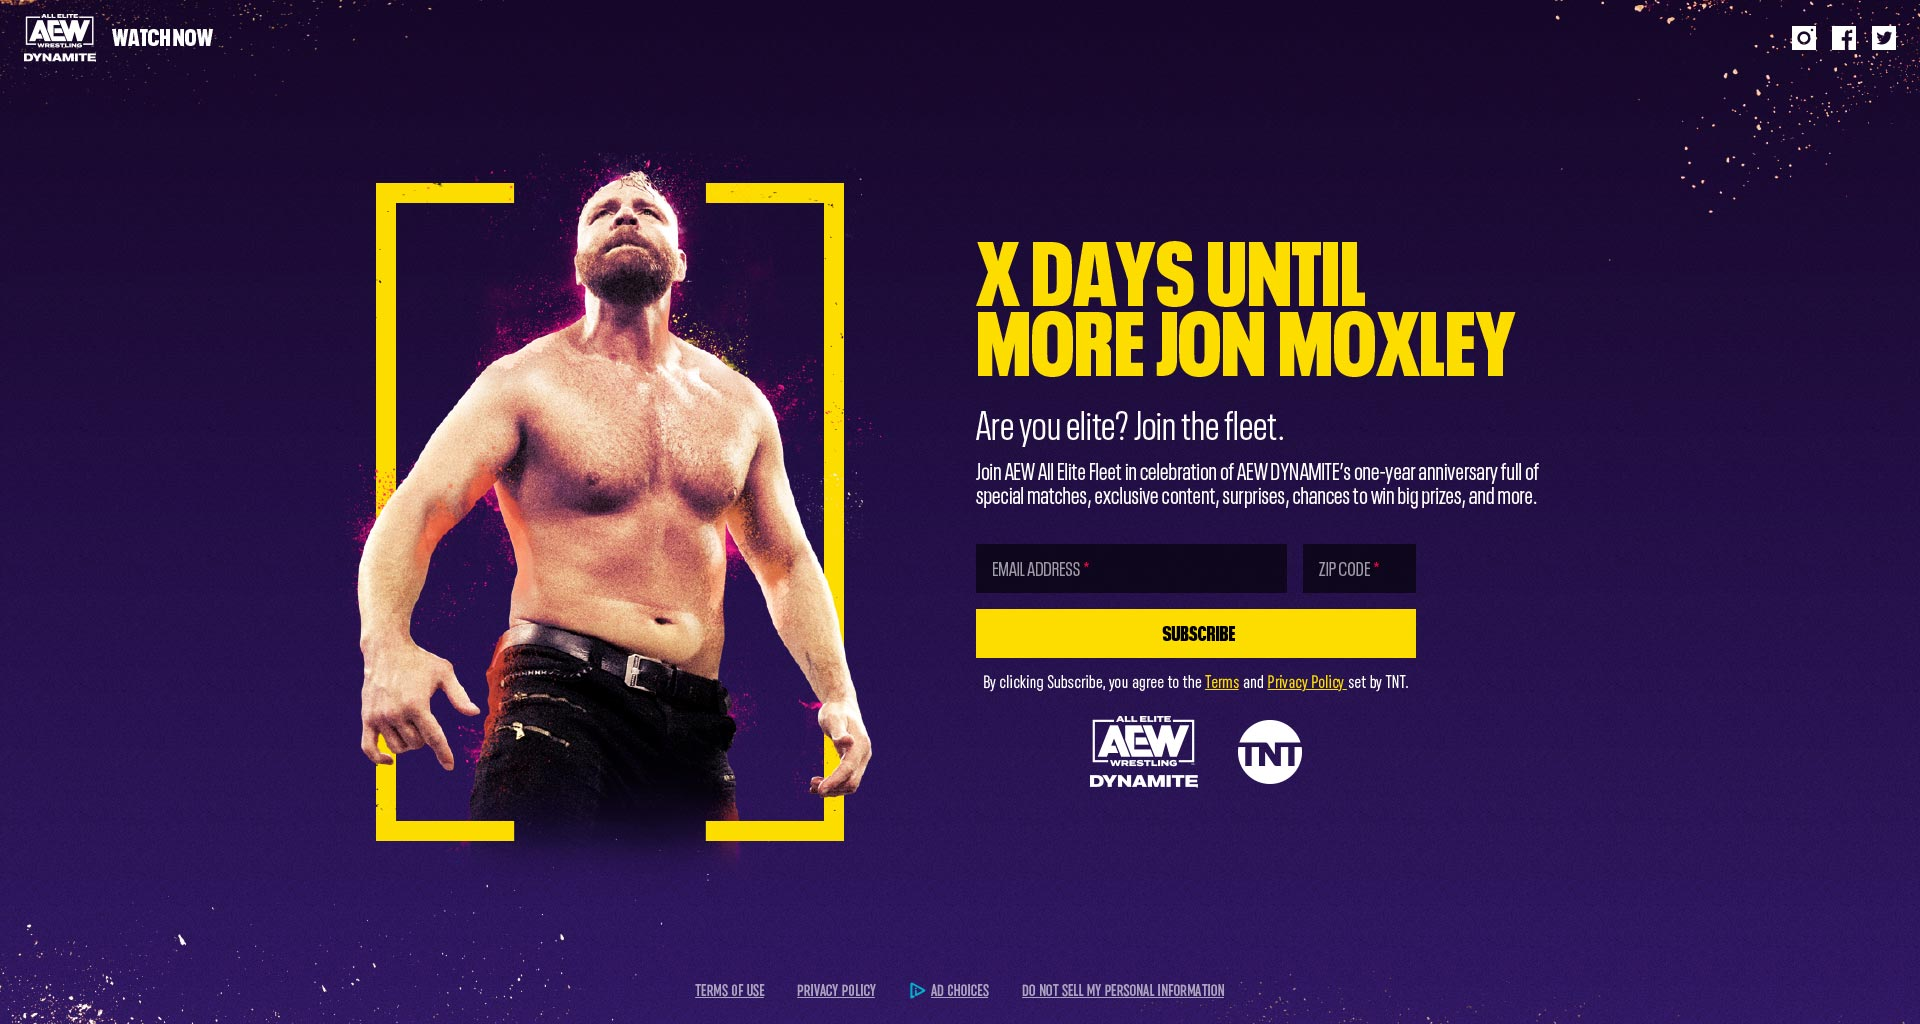 Landing page for AEW web experience before launch date. Wrestler Jon Moxley displayed on the left and a sign up form on the right.